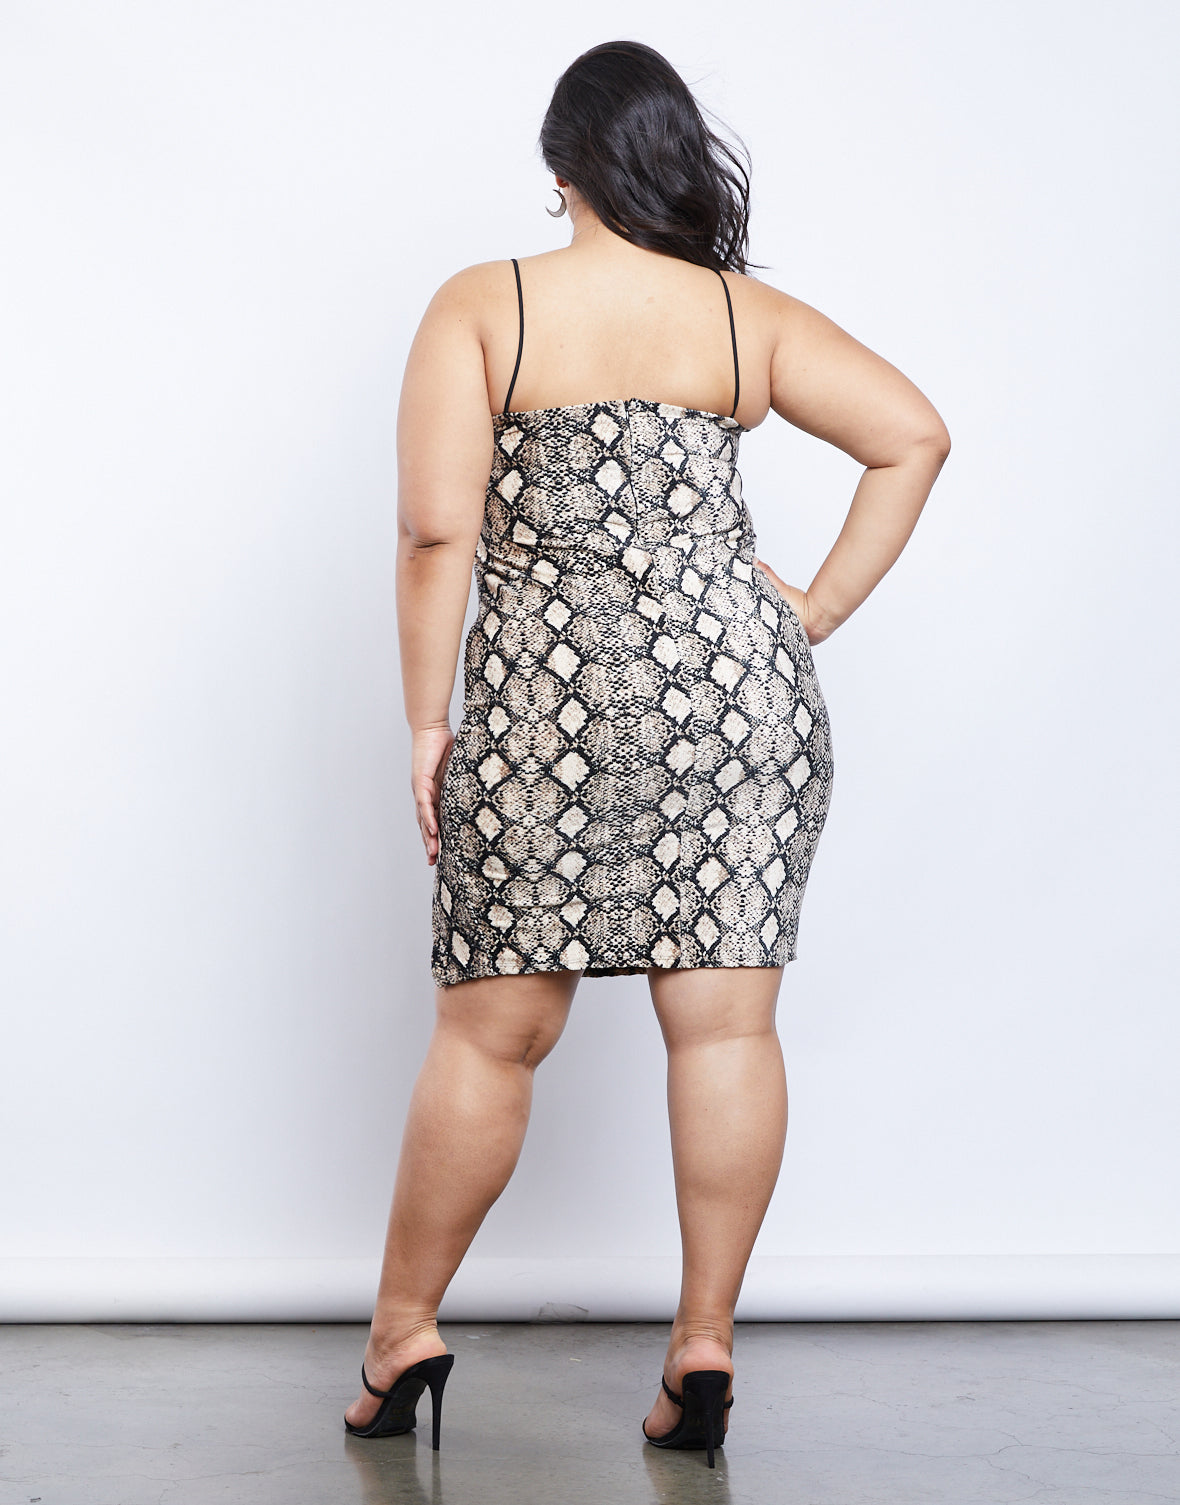 Plus Size Medusa Dress